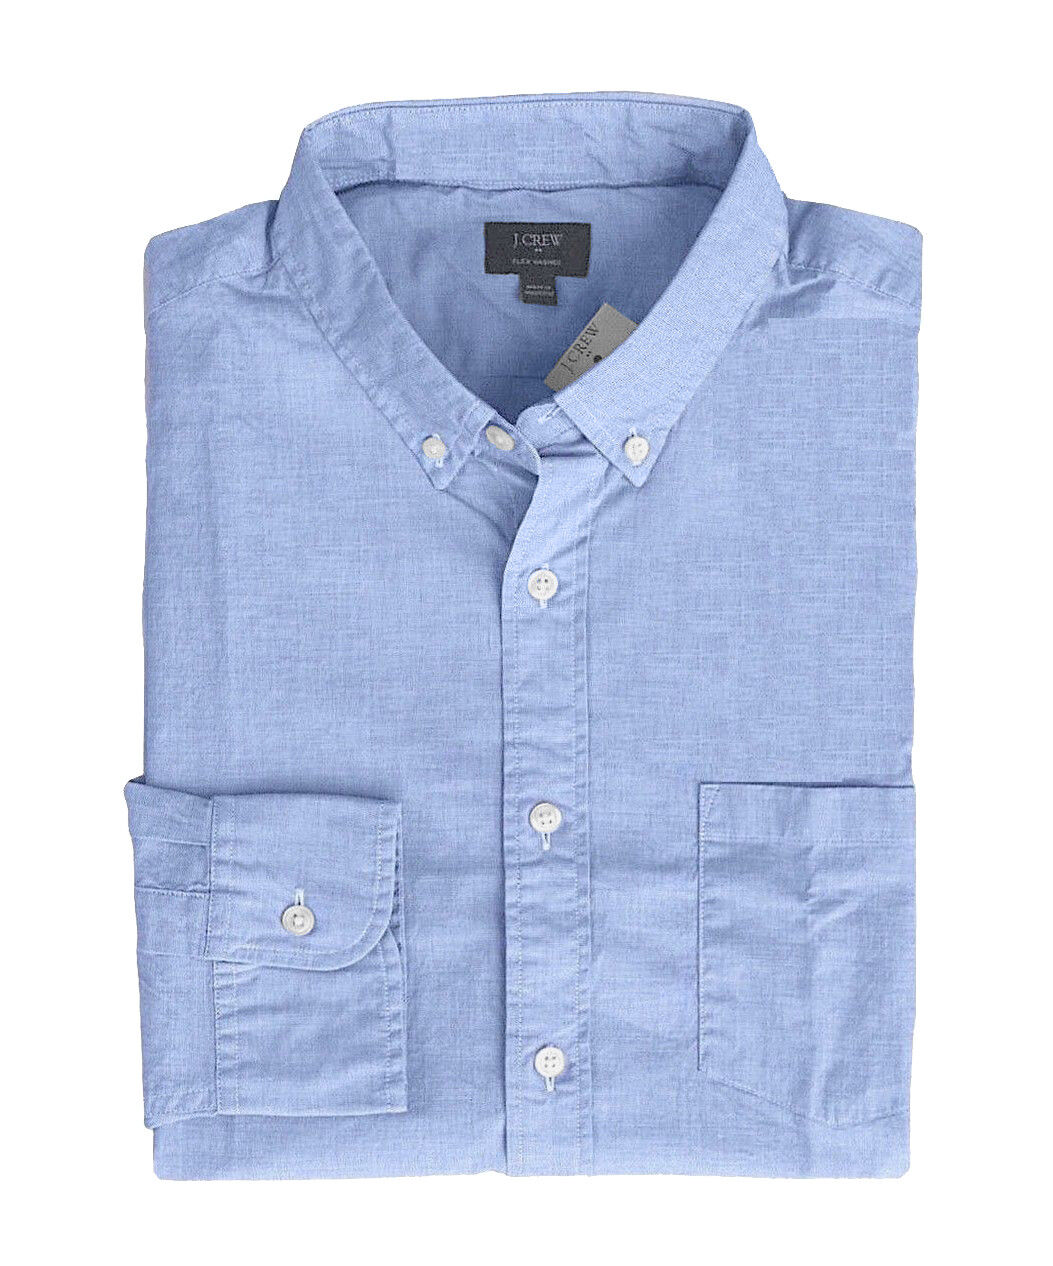 J.Crew Factory - Men's L - Regular Fit - bluee End-to-End Washed Cotton Shirt